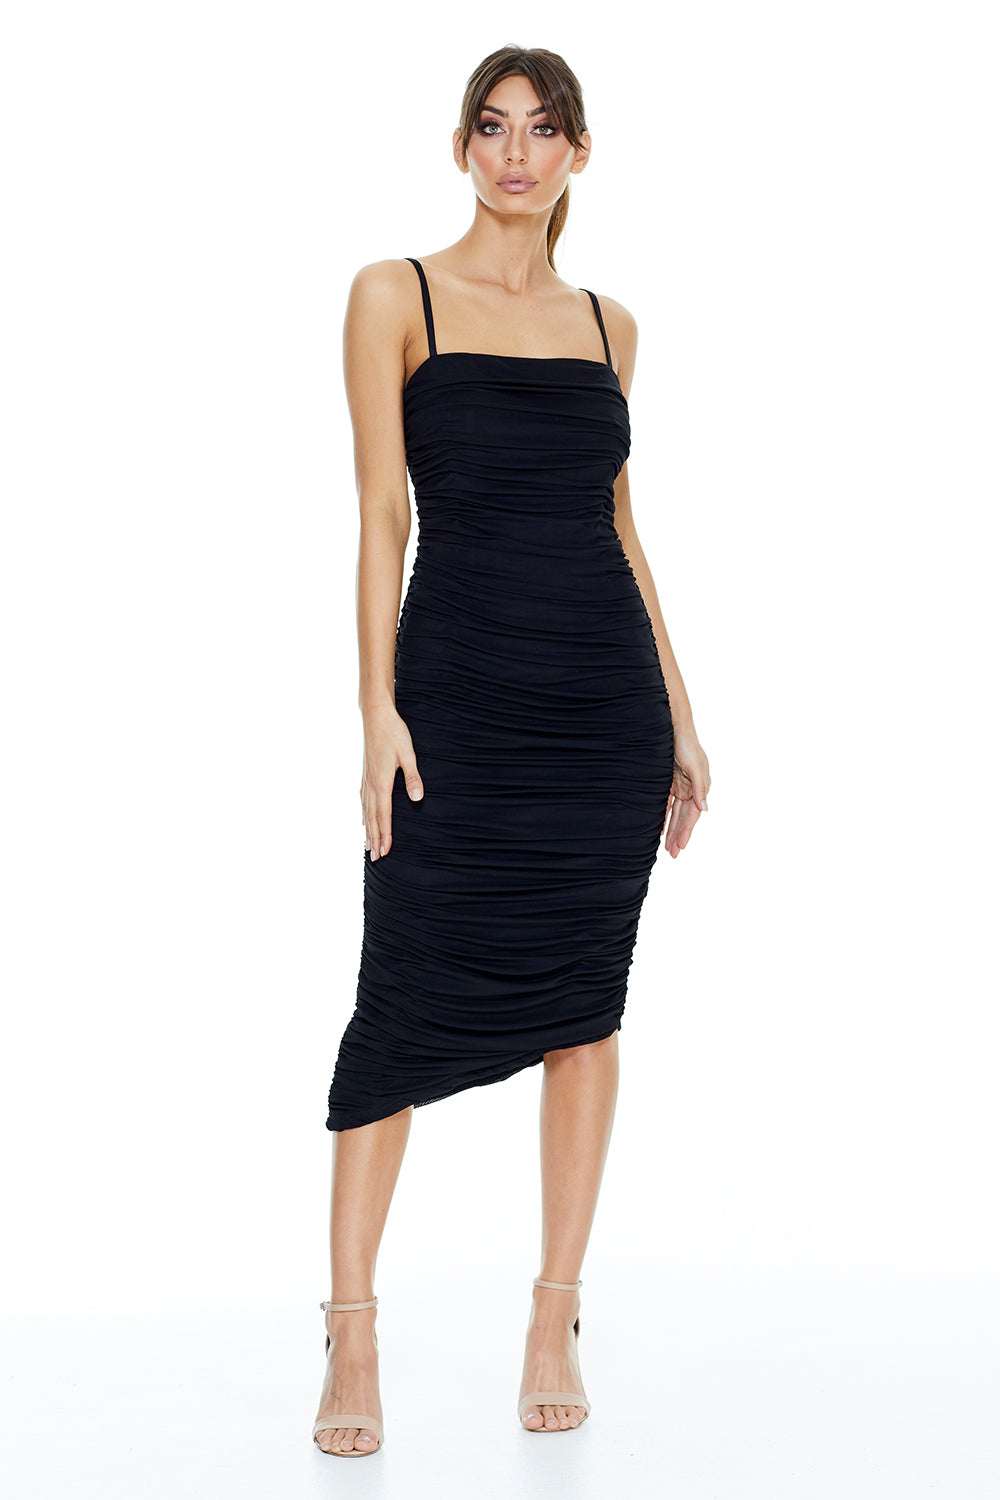 Reign Cartel Stella Ruched Midi Dress